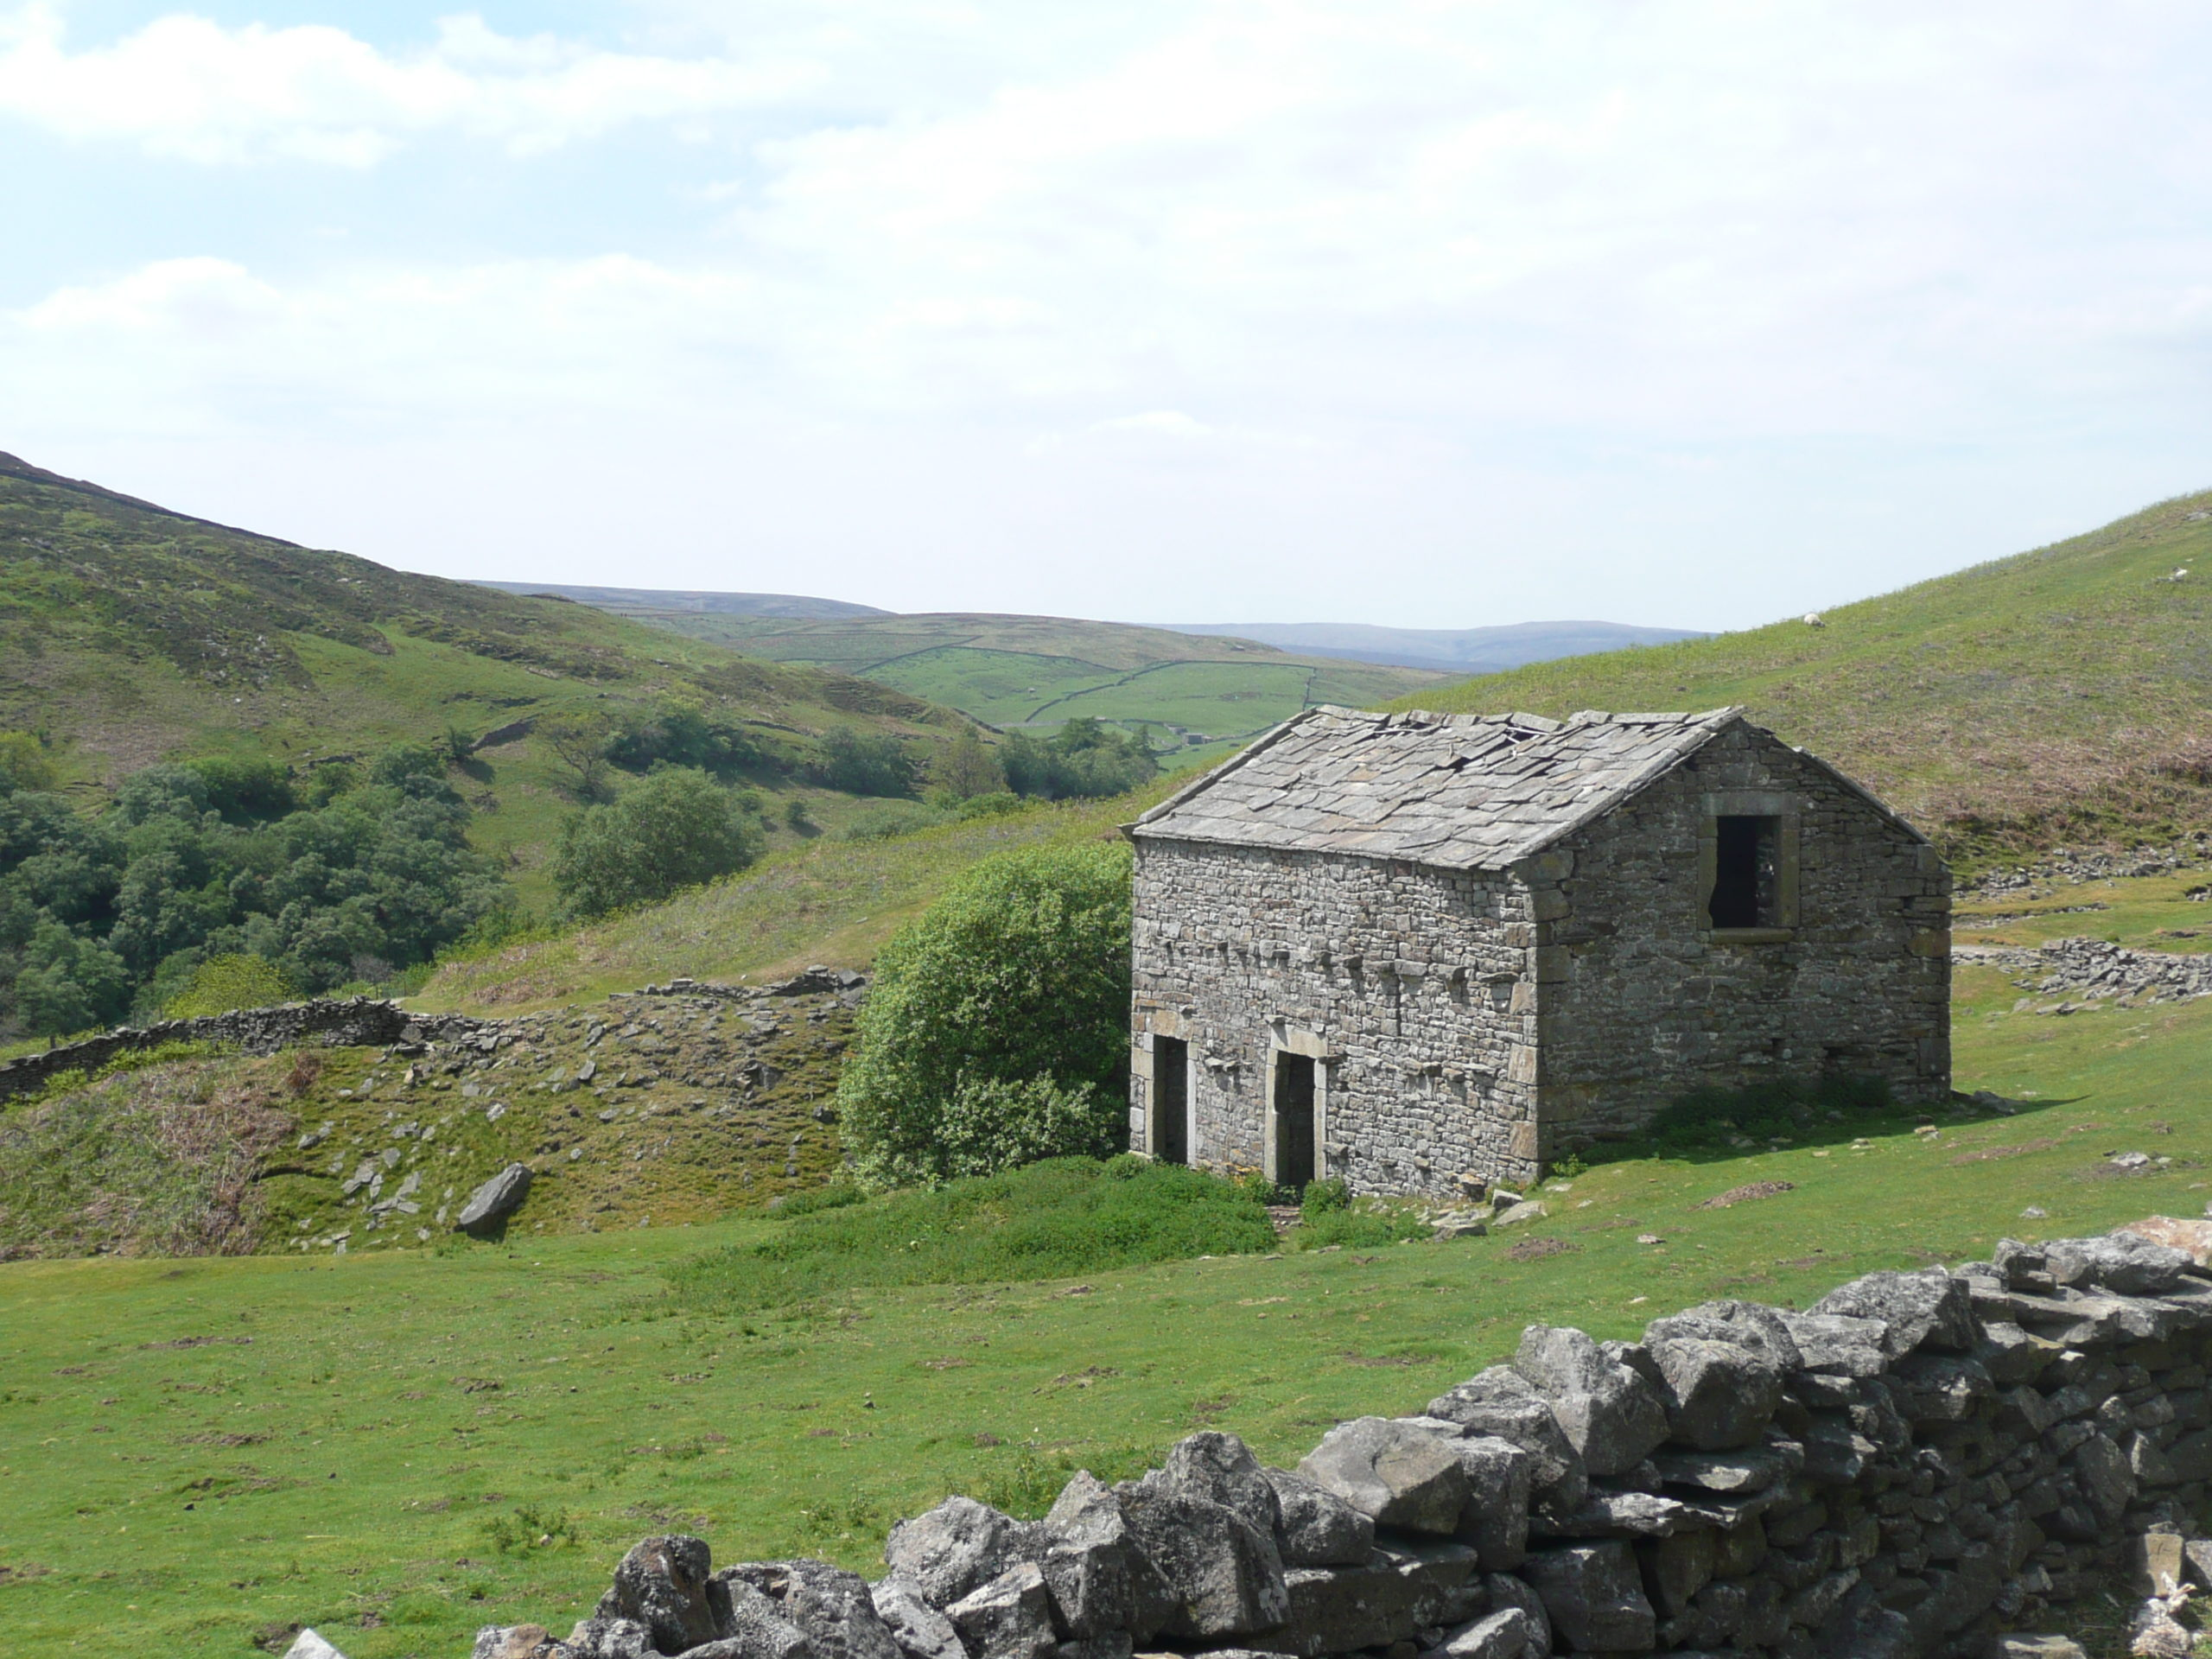 Typical Swaledale Barn